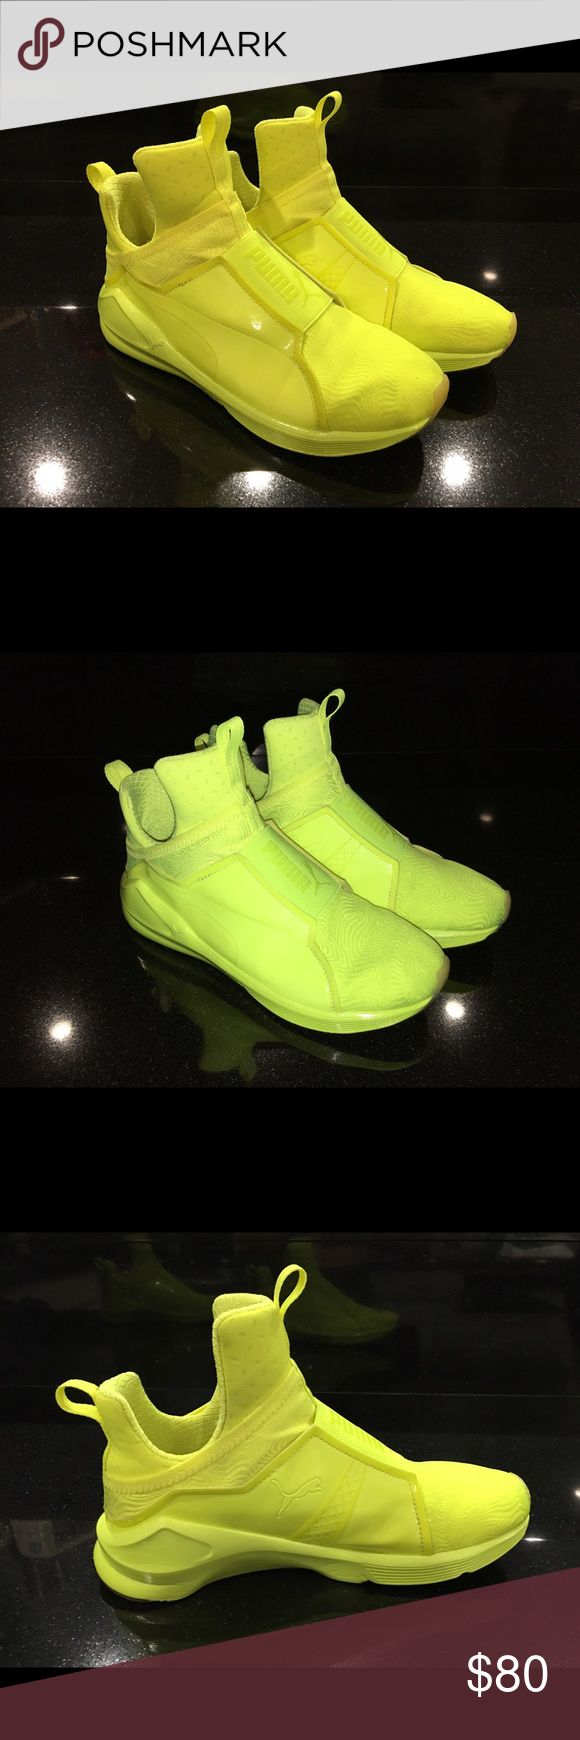 Puma Fierce Safety Yellow Women's Trainer Size 8 These have been worn a handful of times but are in near new condition. Puma Shoes Sneakers